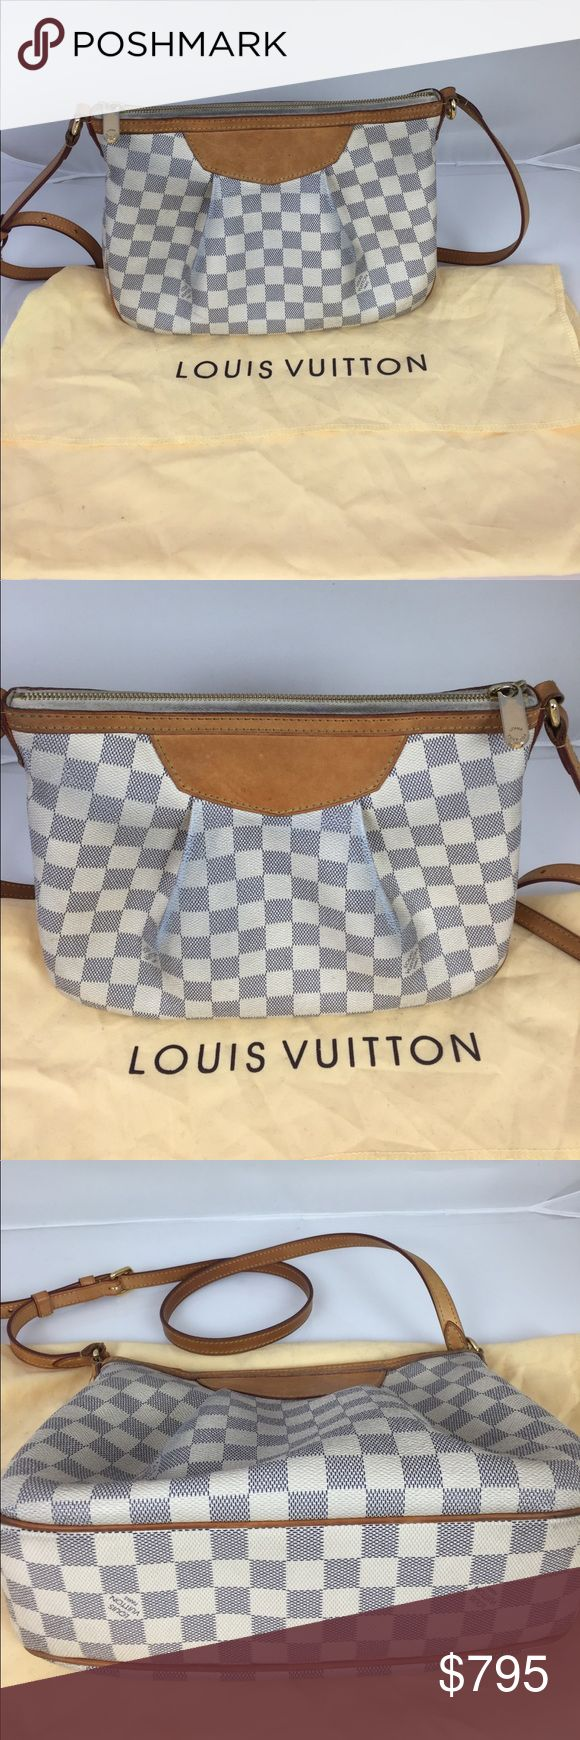 Louis Vuitton Siracusa Crossbag! Authentic O N E H O U R S A L E 👜 LV ✨authentic Price drop!!! Authentic Louis Vuitton Siracusa cross bag. size L: 11 H: 8 Condition used. Great to wear everyday! Original owner and loved!!! Comes with original dust bag and box. No trades and low balling.  Bought in 2015 at the LOUIS  VUITTON store South Coast plaza City of costa mesa, CA.  Slight color transfer and can use cleaning inside due to some makeup marks. Tiny water stains. Zipper has some fading…